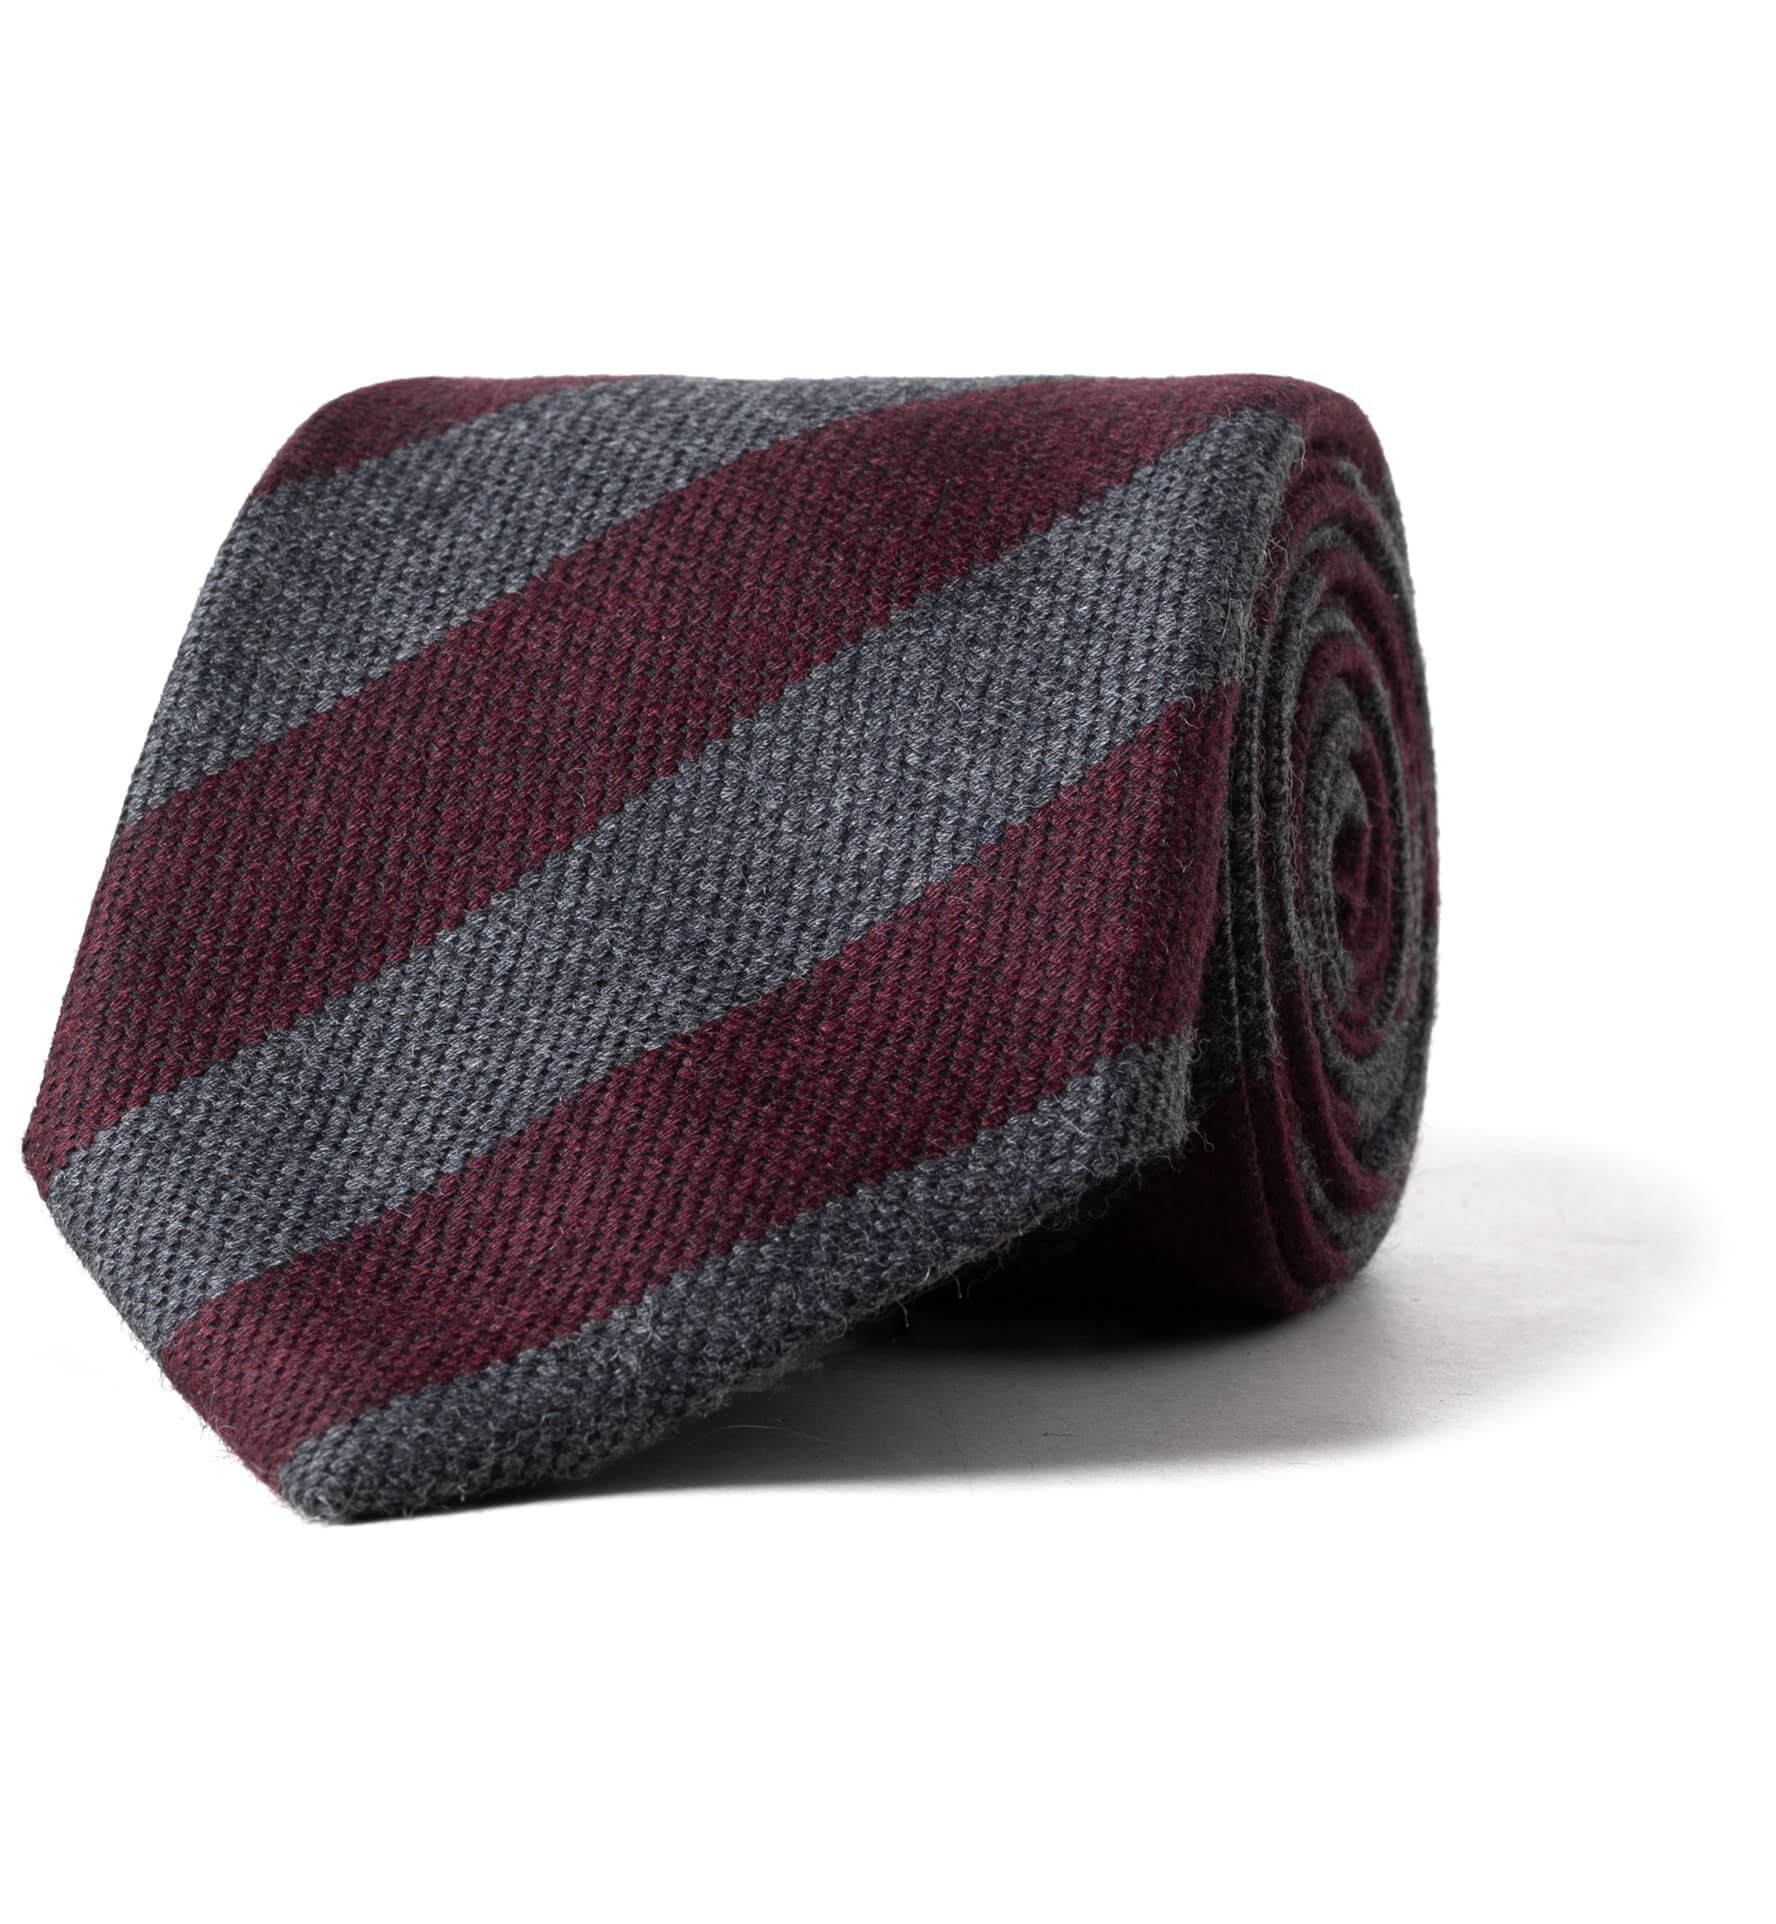 Zoom Image of Burgundy and Grey Striped Wool and Silk Tie